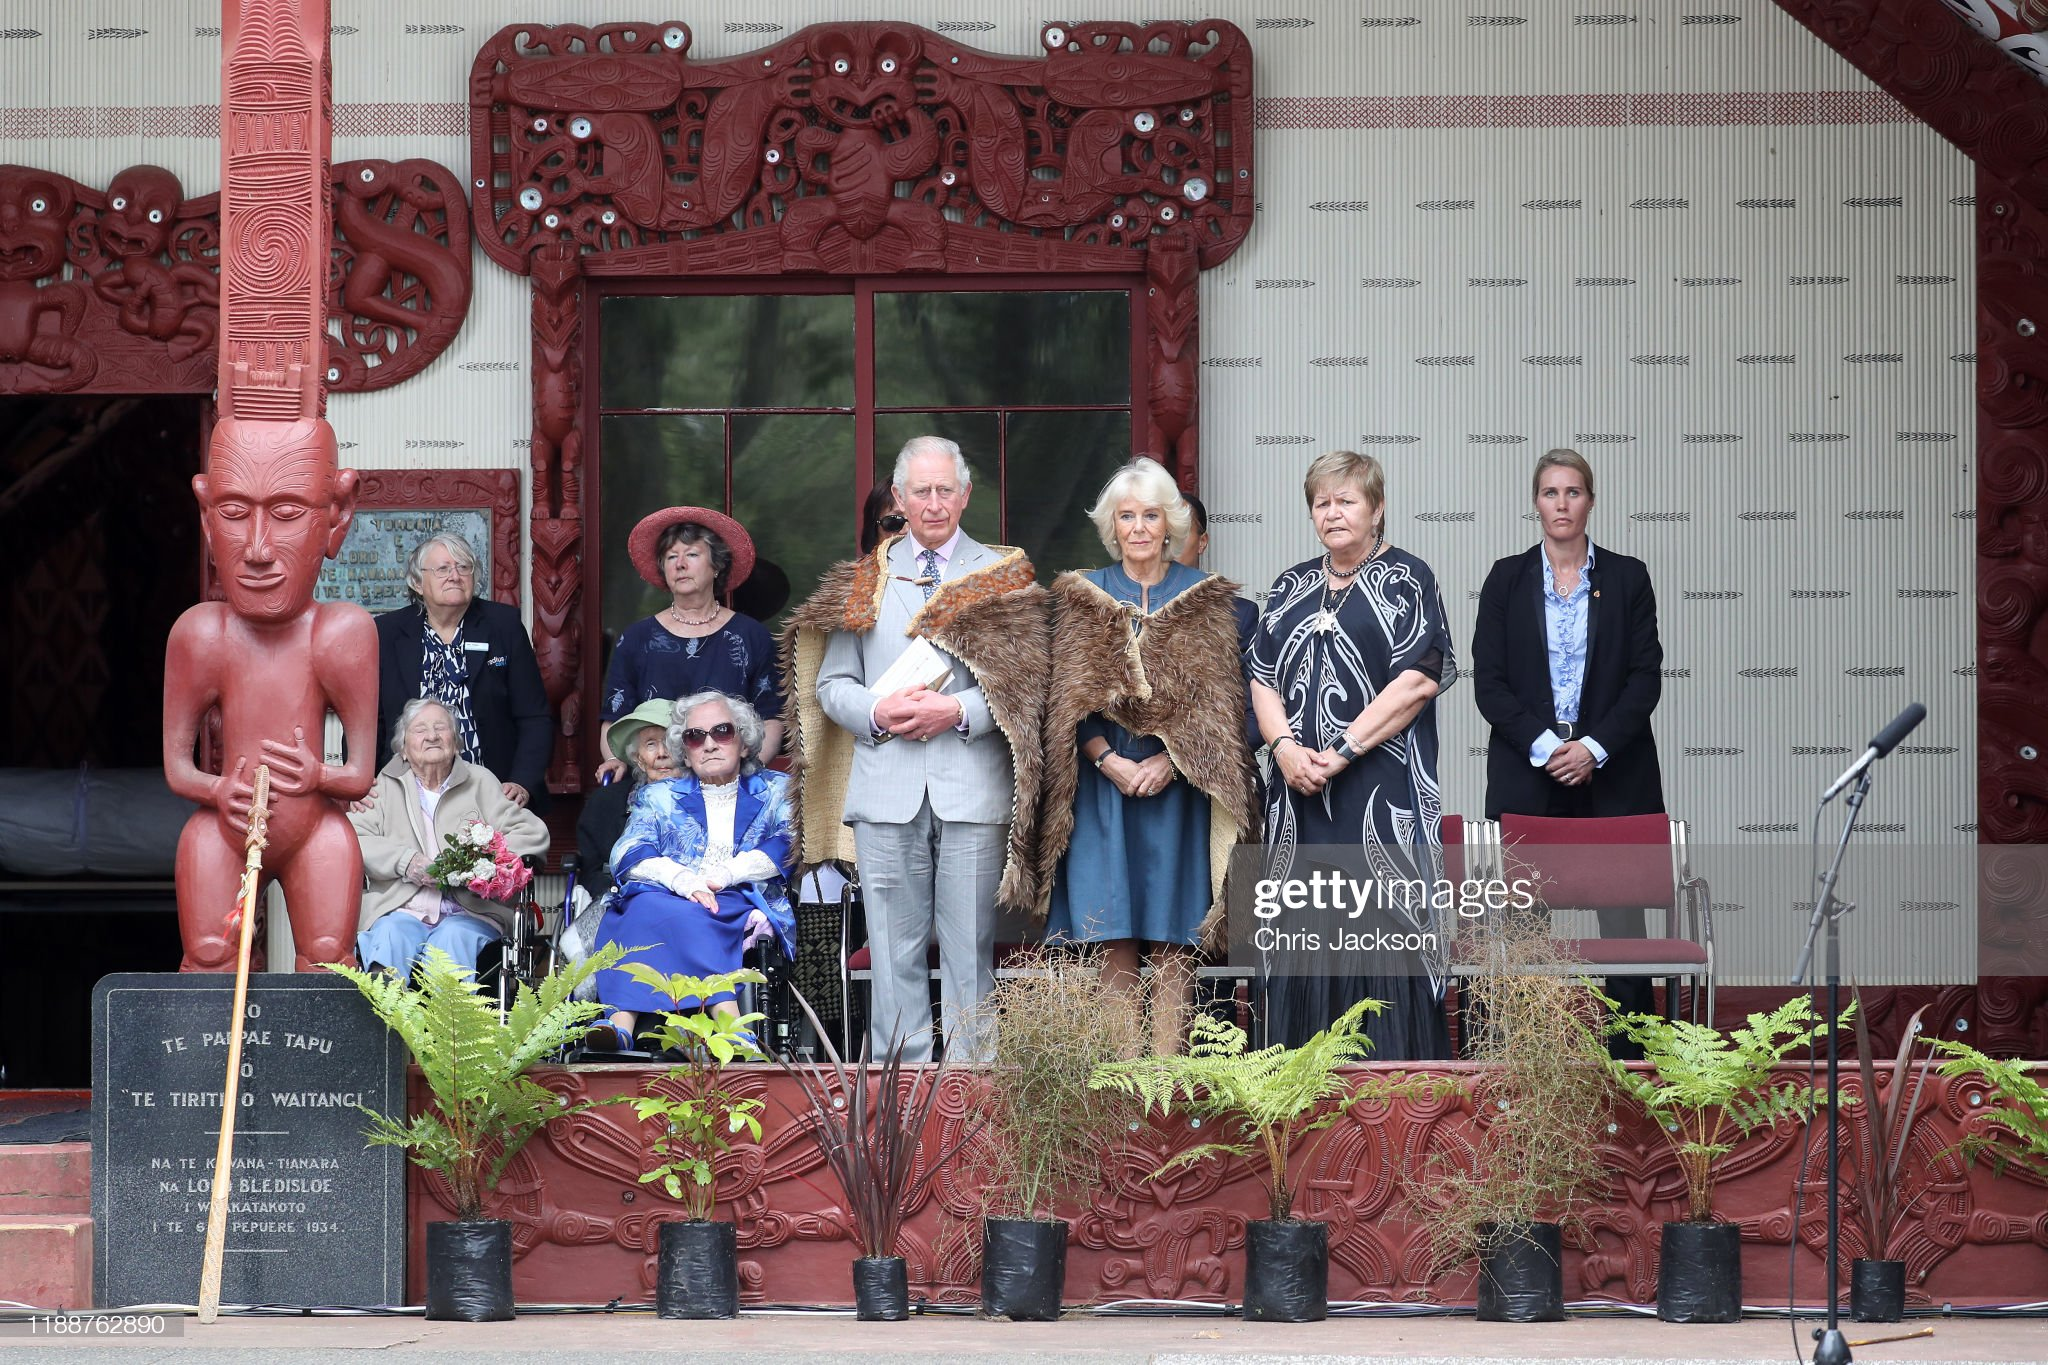 CASA REAL BRITÁNICA - Página 75 Prince-charles-prince-of-wales-and-camilla-duchess-of-cornwall-attend-picture-id1188762890?s=2048x2048